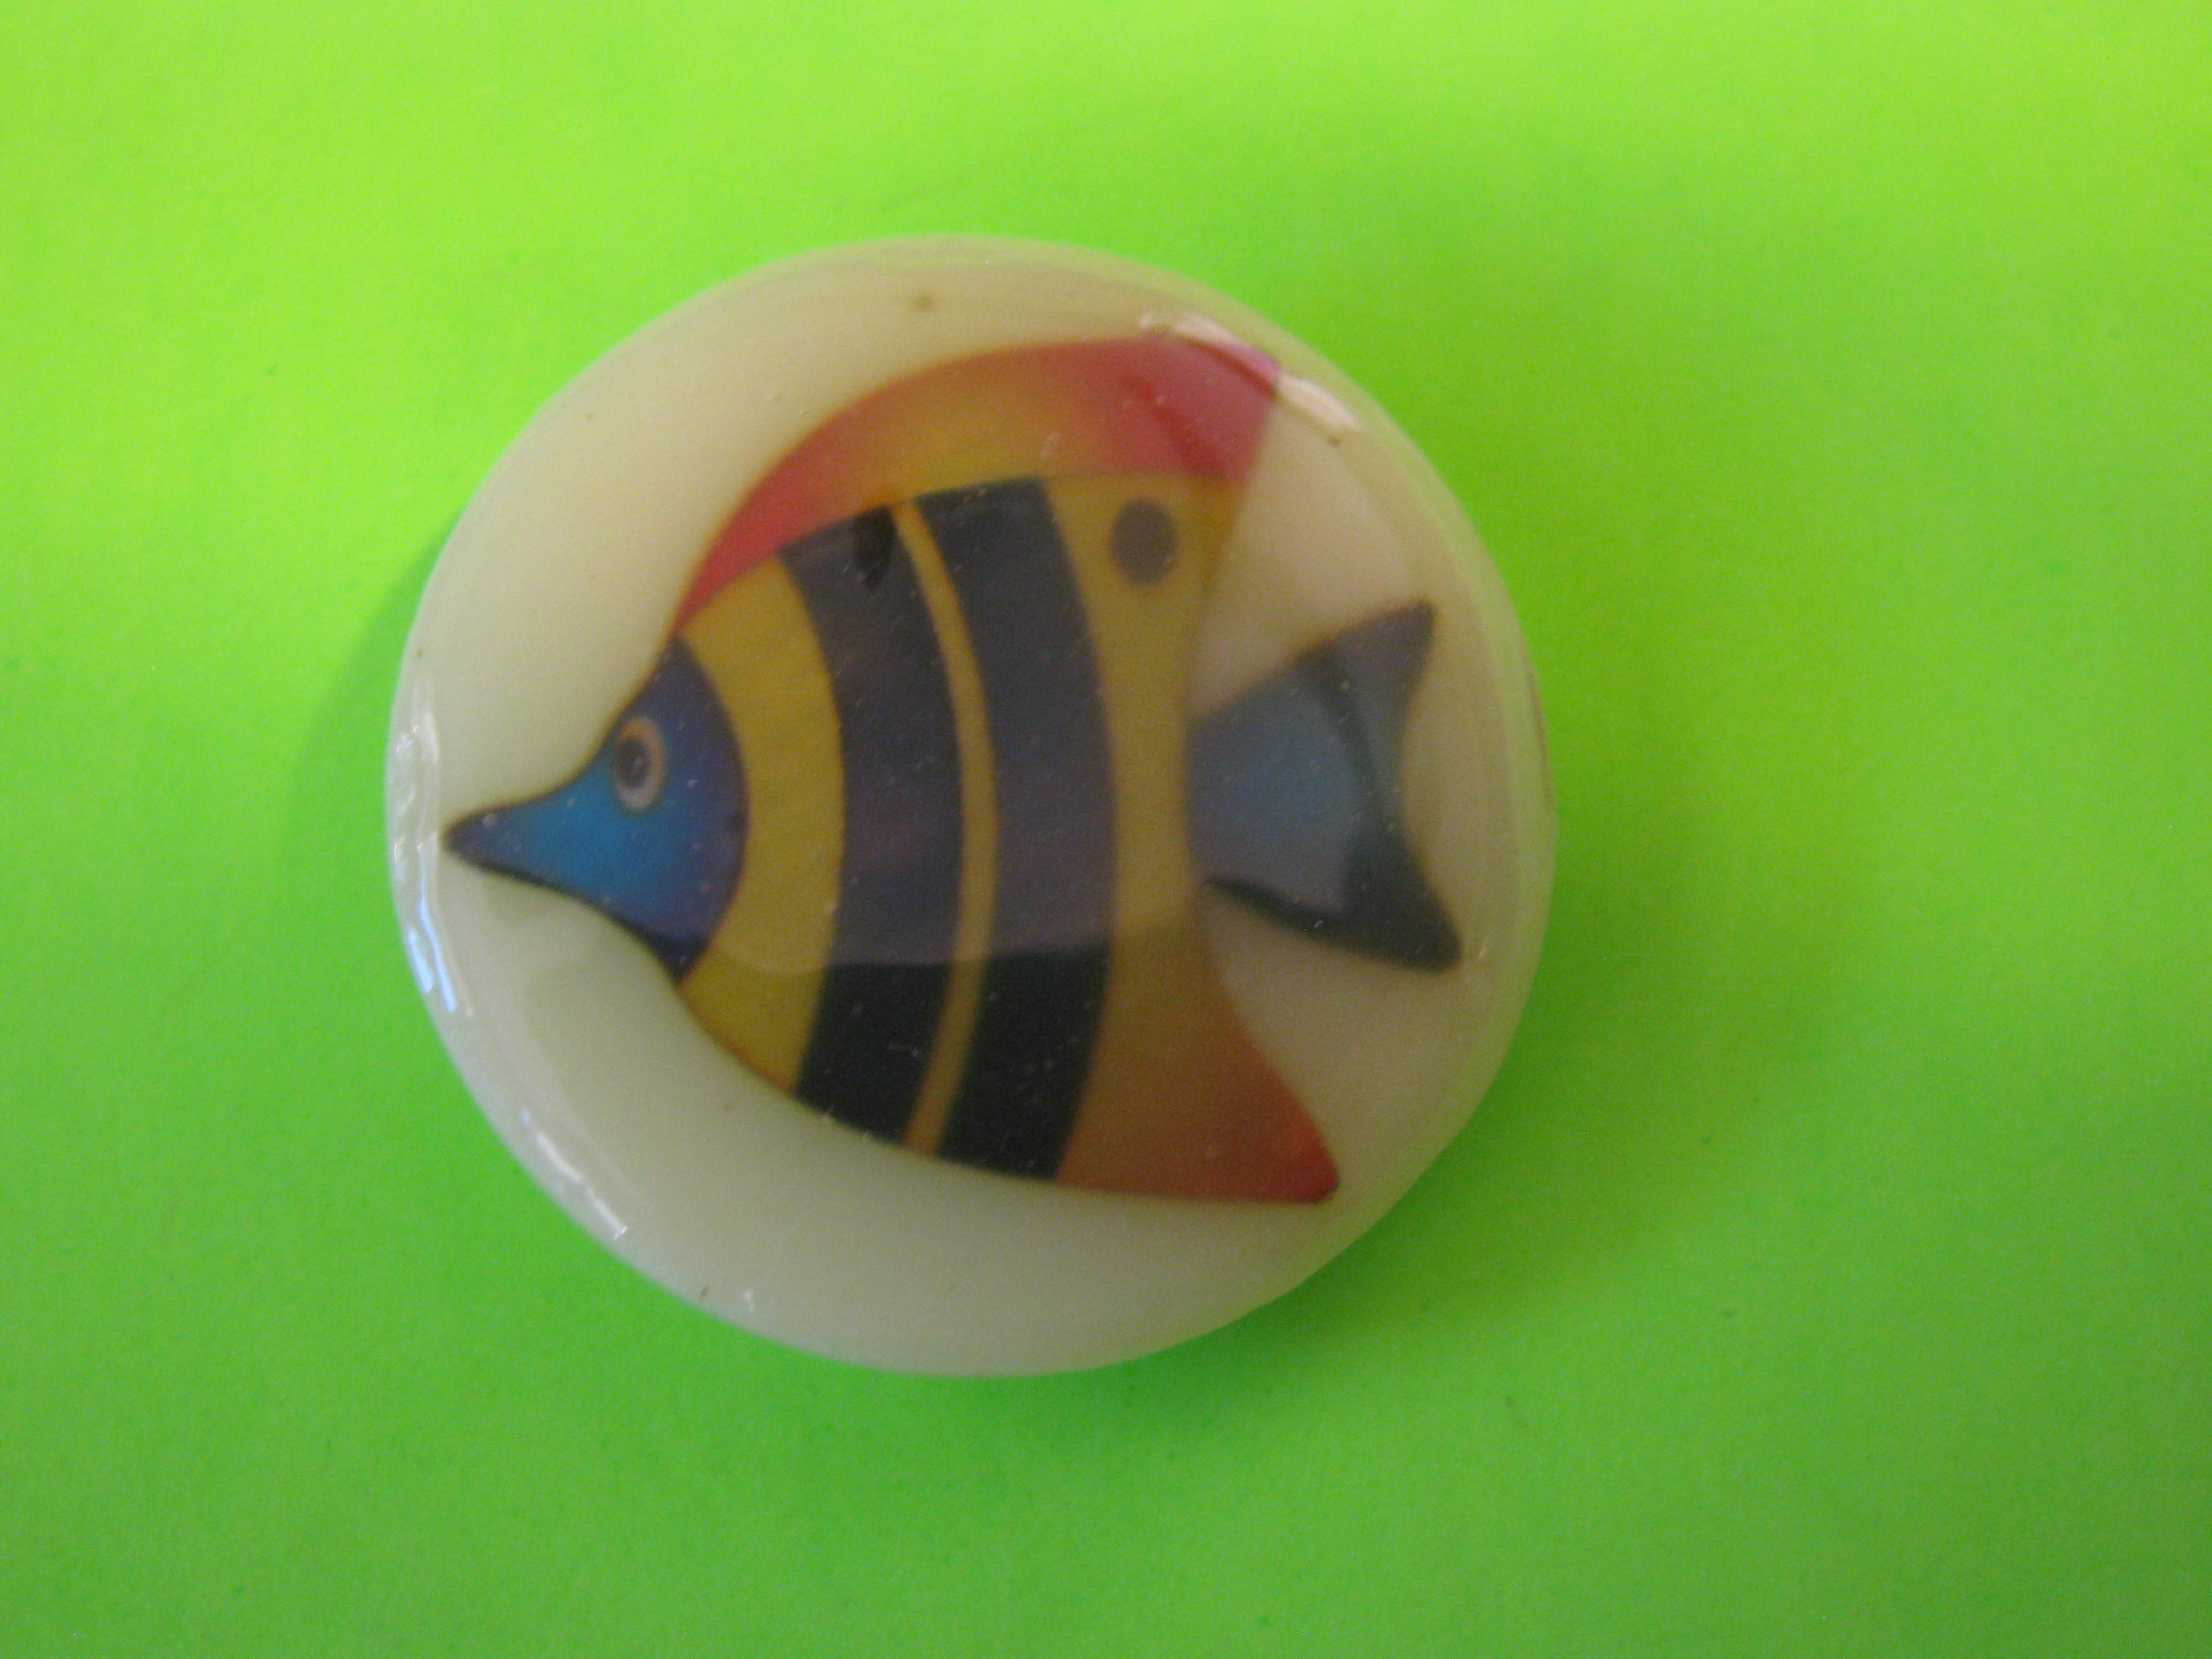 * SOLD * Colorful Angle Fish on Plastic Button with Metal Loop Shank